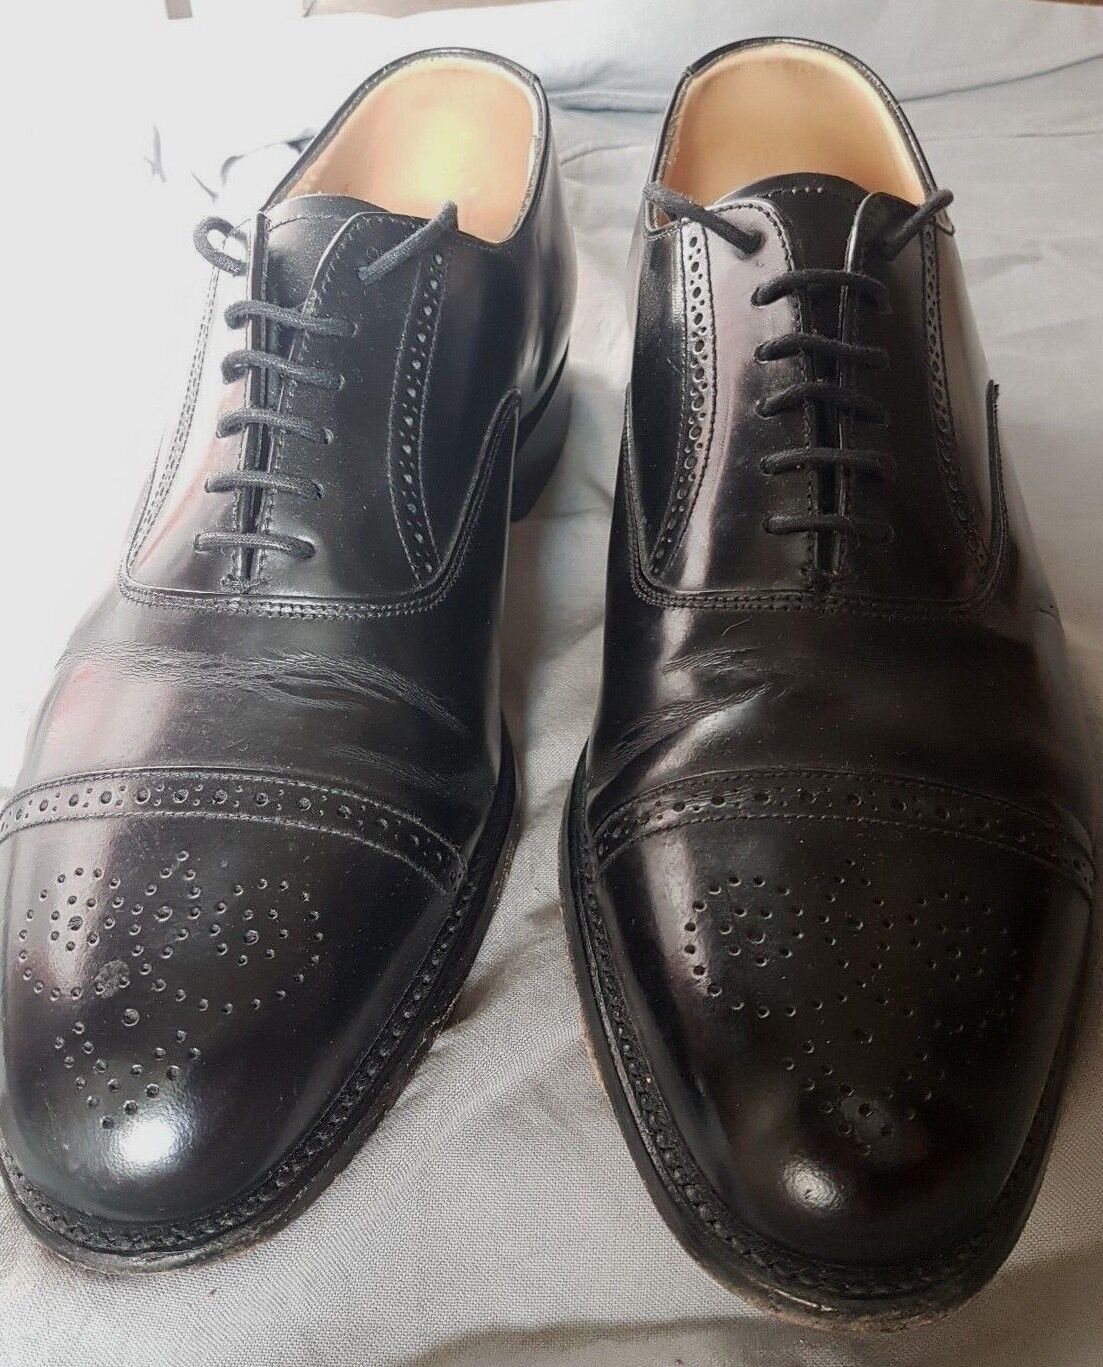 Grenson 8 F UK Brogues 38249 Formal Patterned 16244/01 38249 Brogues 13ed6e